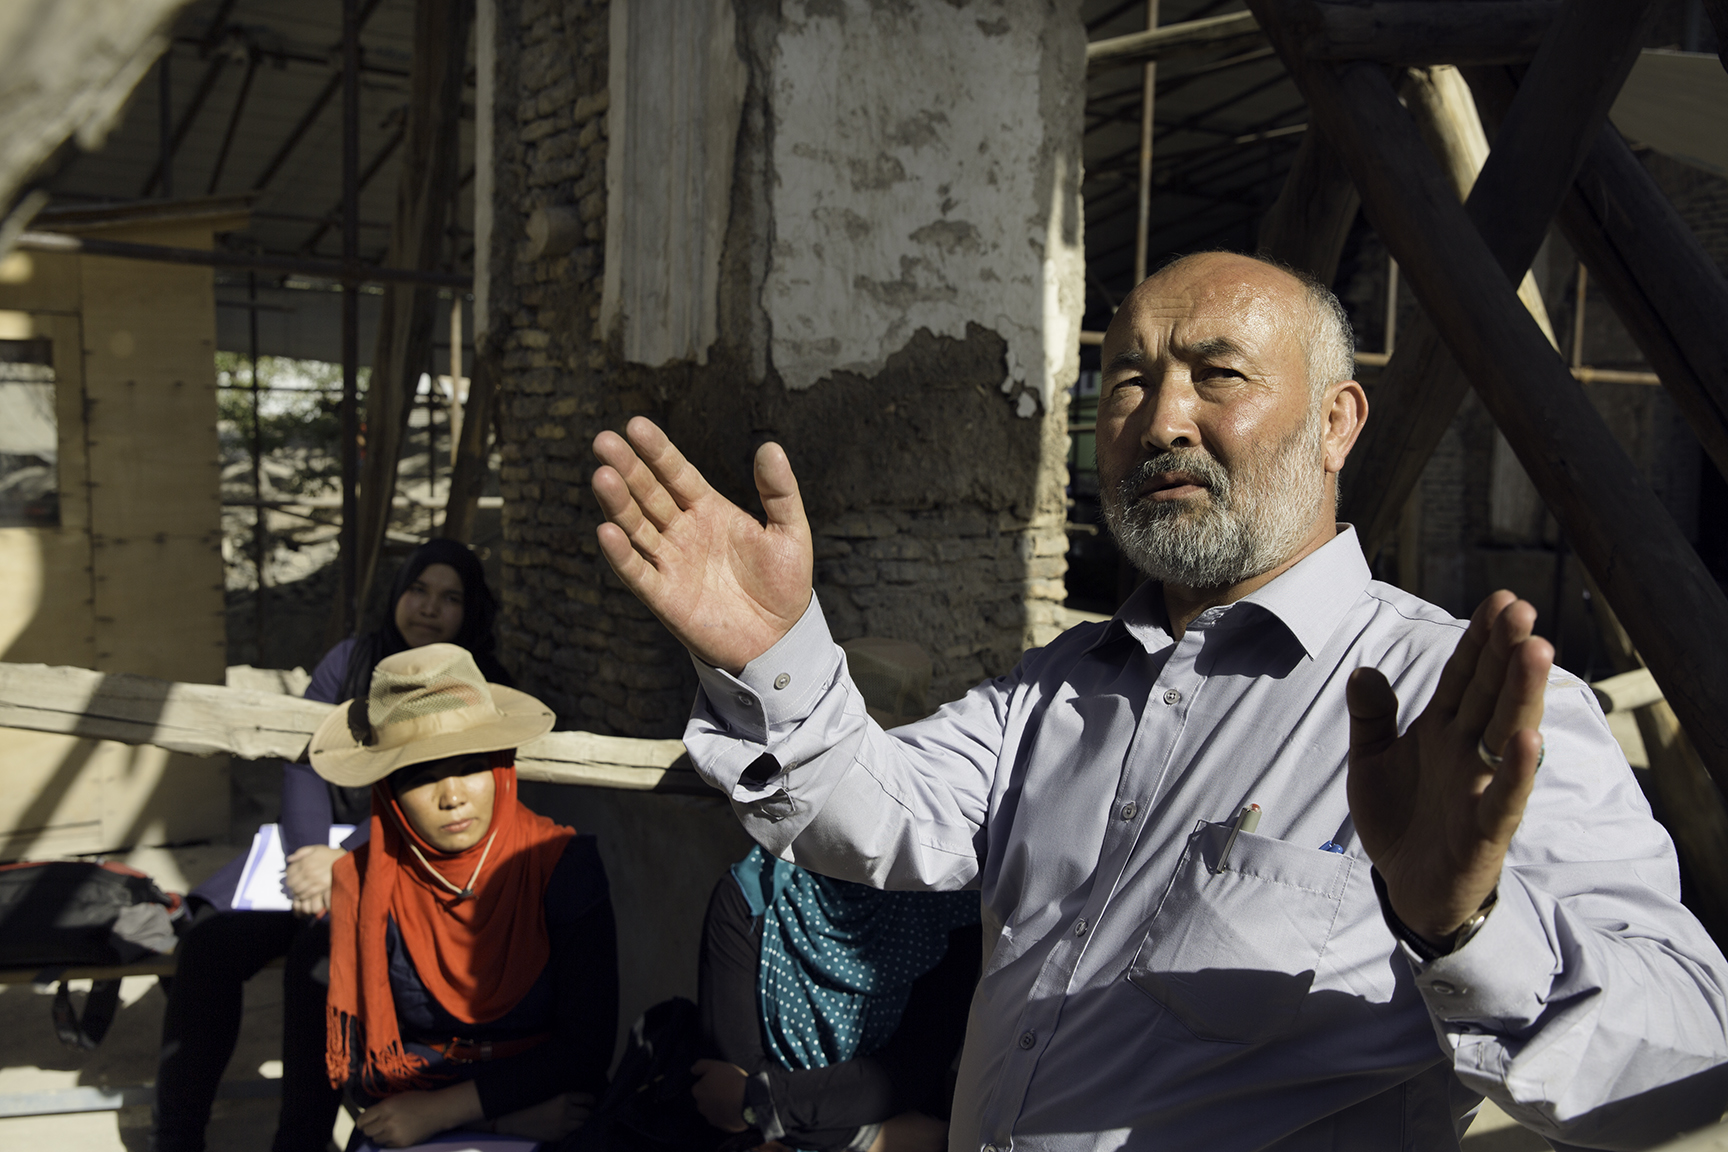 A Kabul University professor lectures to students about the restoration of Gudri Mosque.